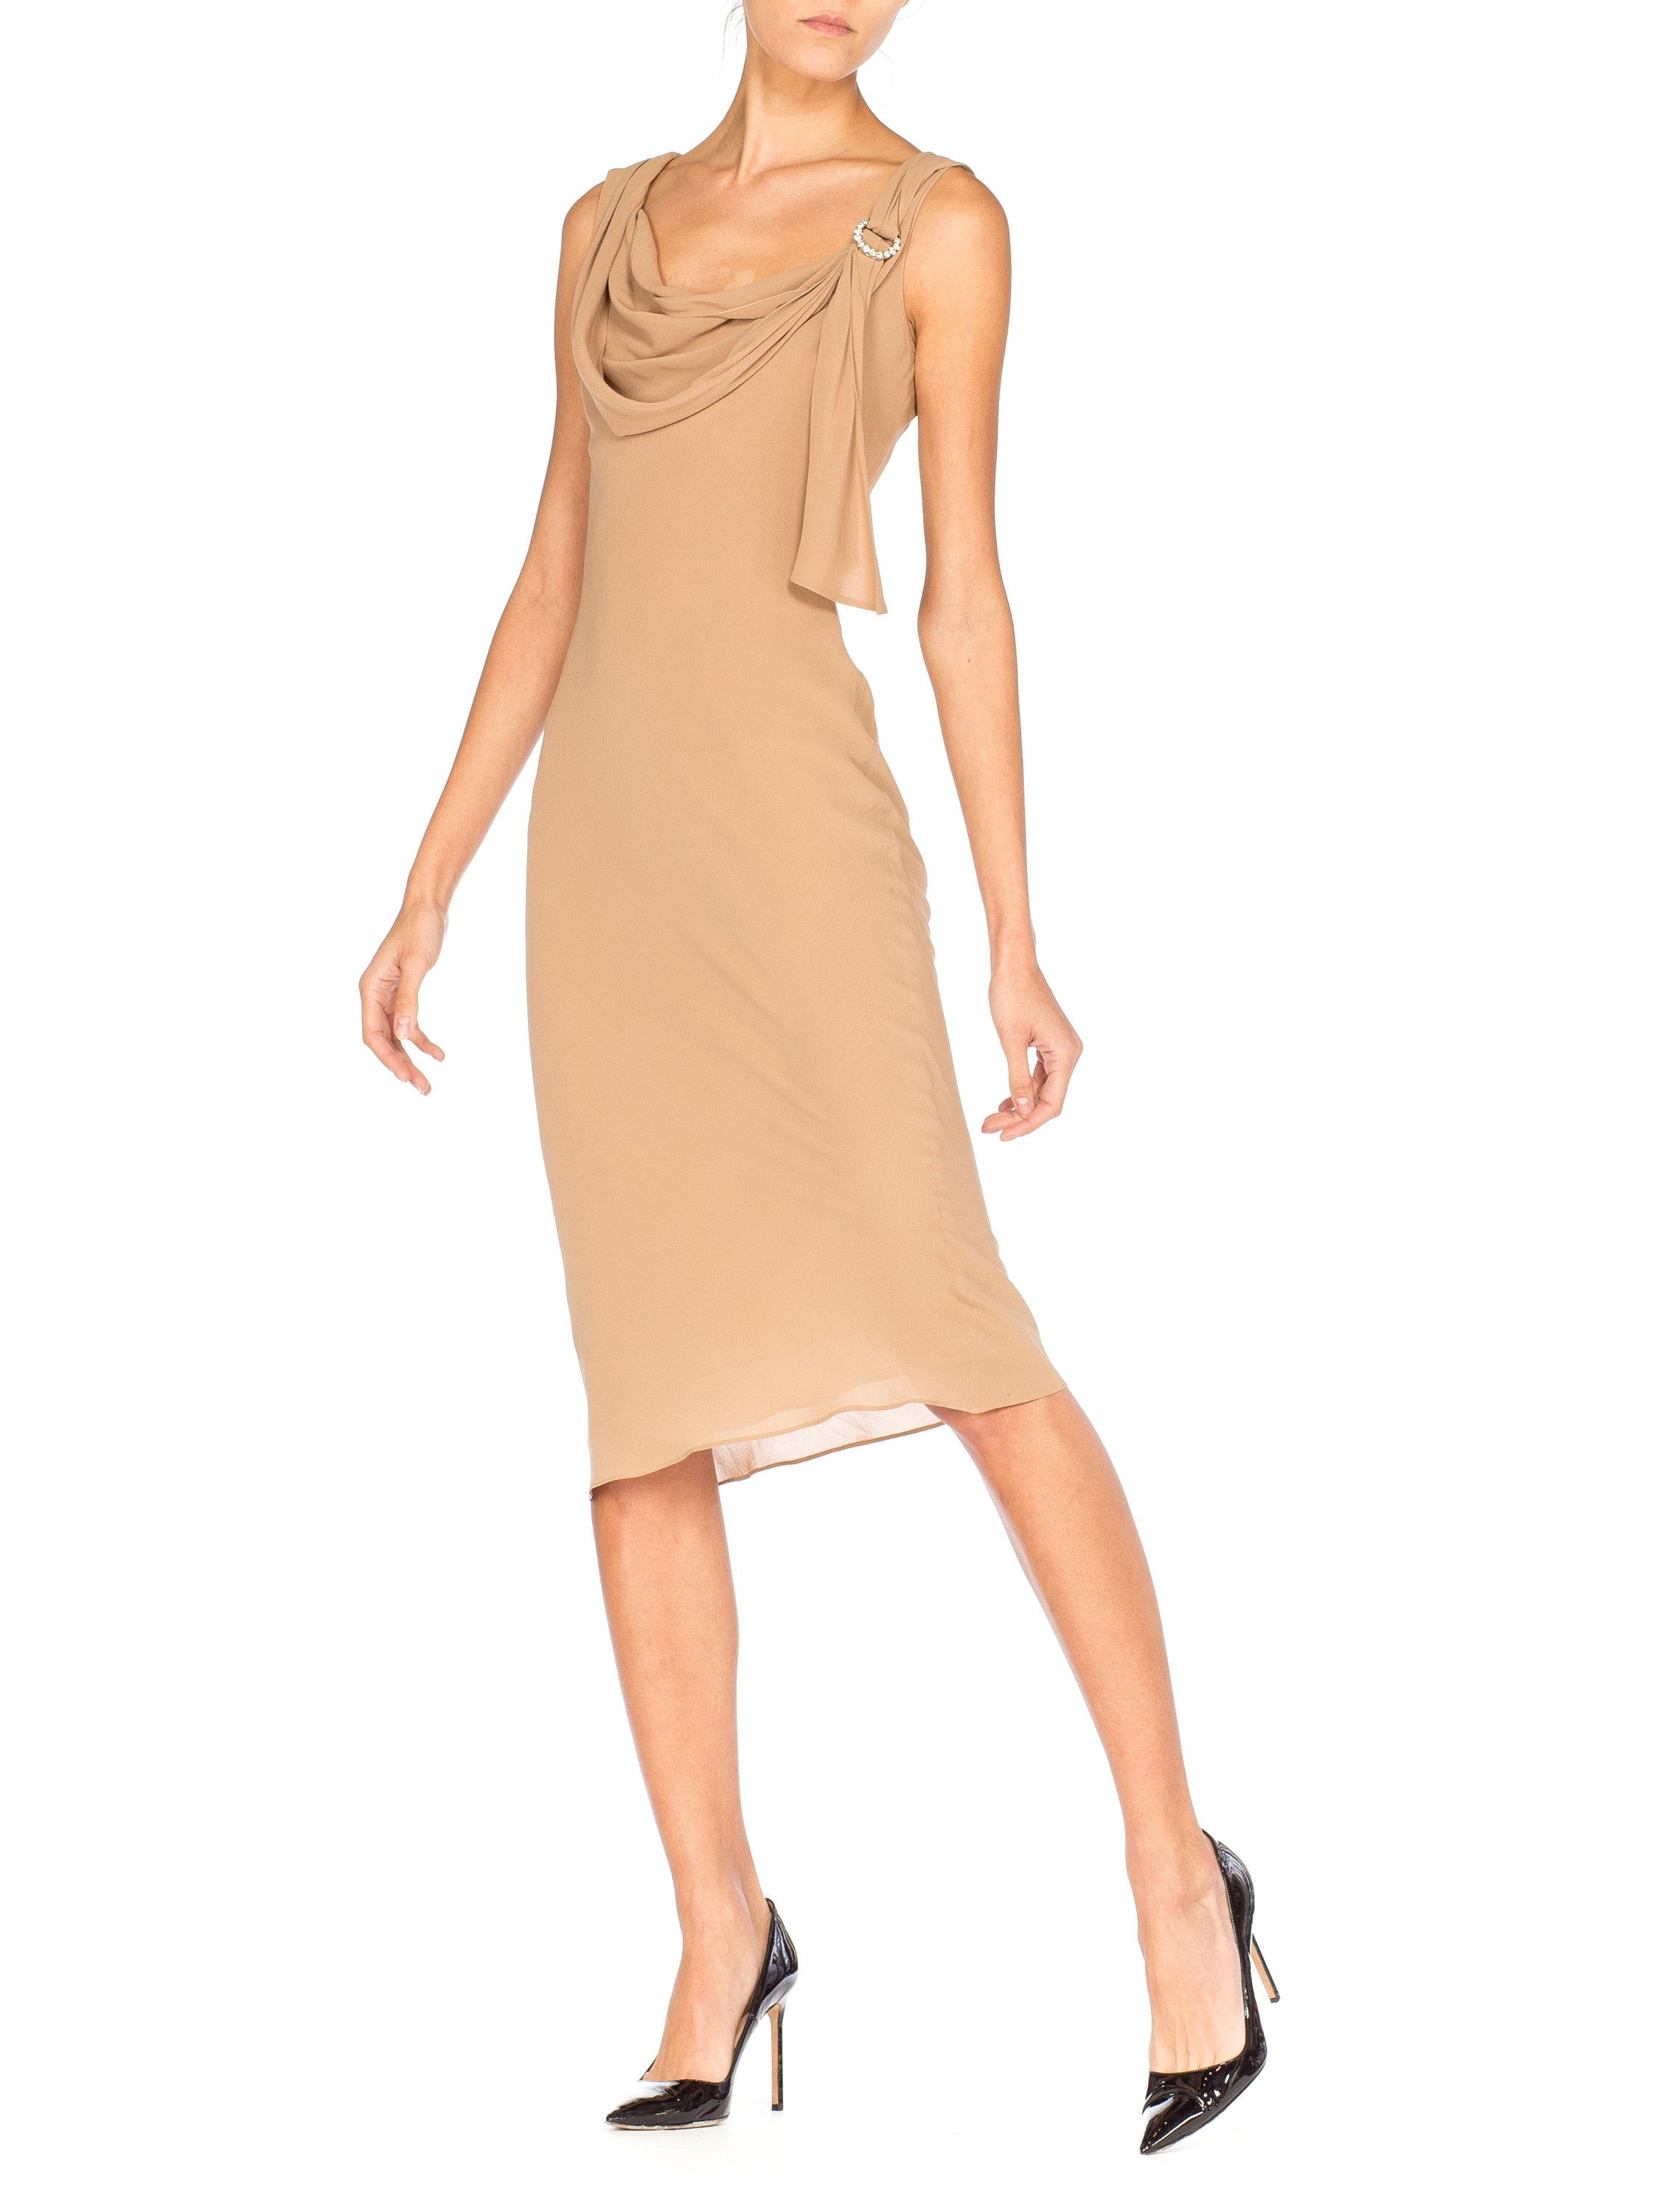 Beige chiffon Galliano 20s inspired drape neck dress with rhinestone buckle